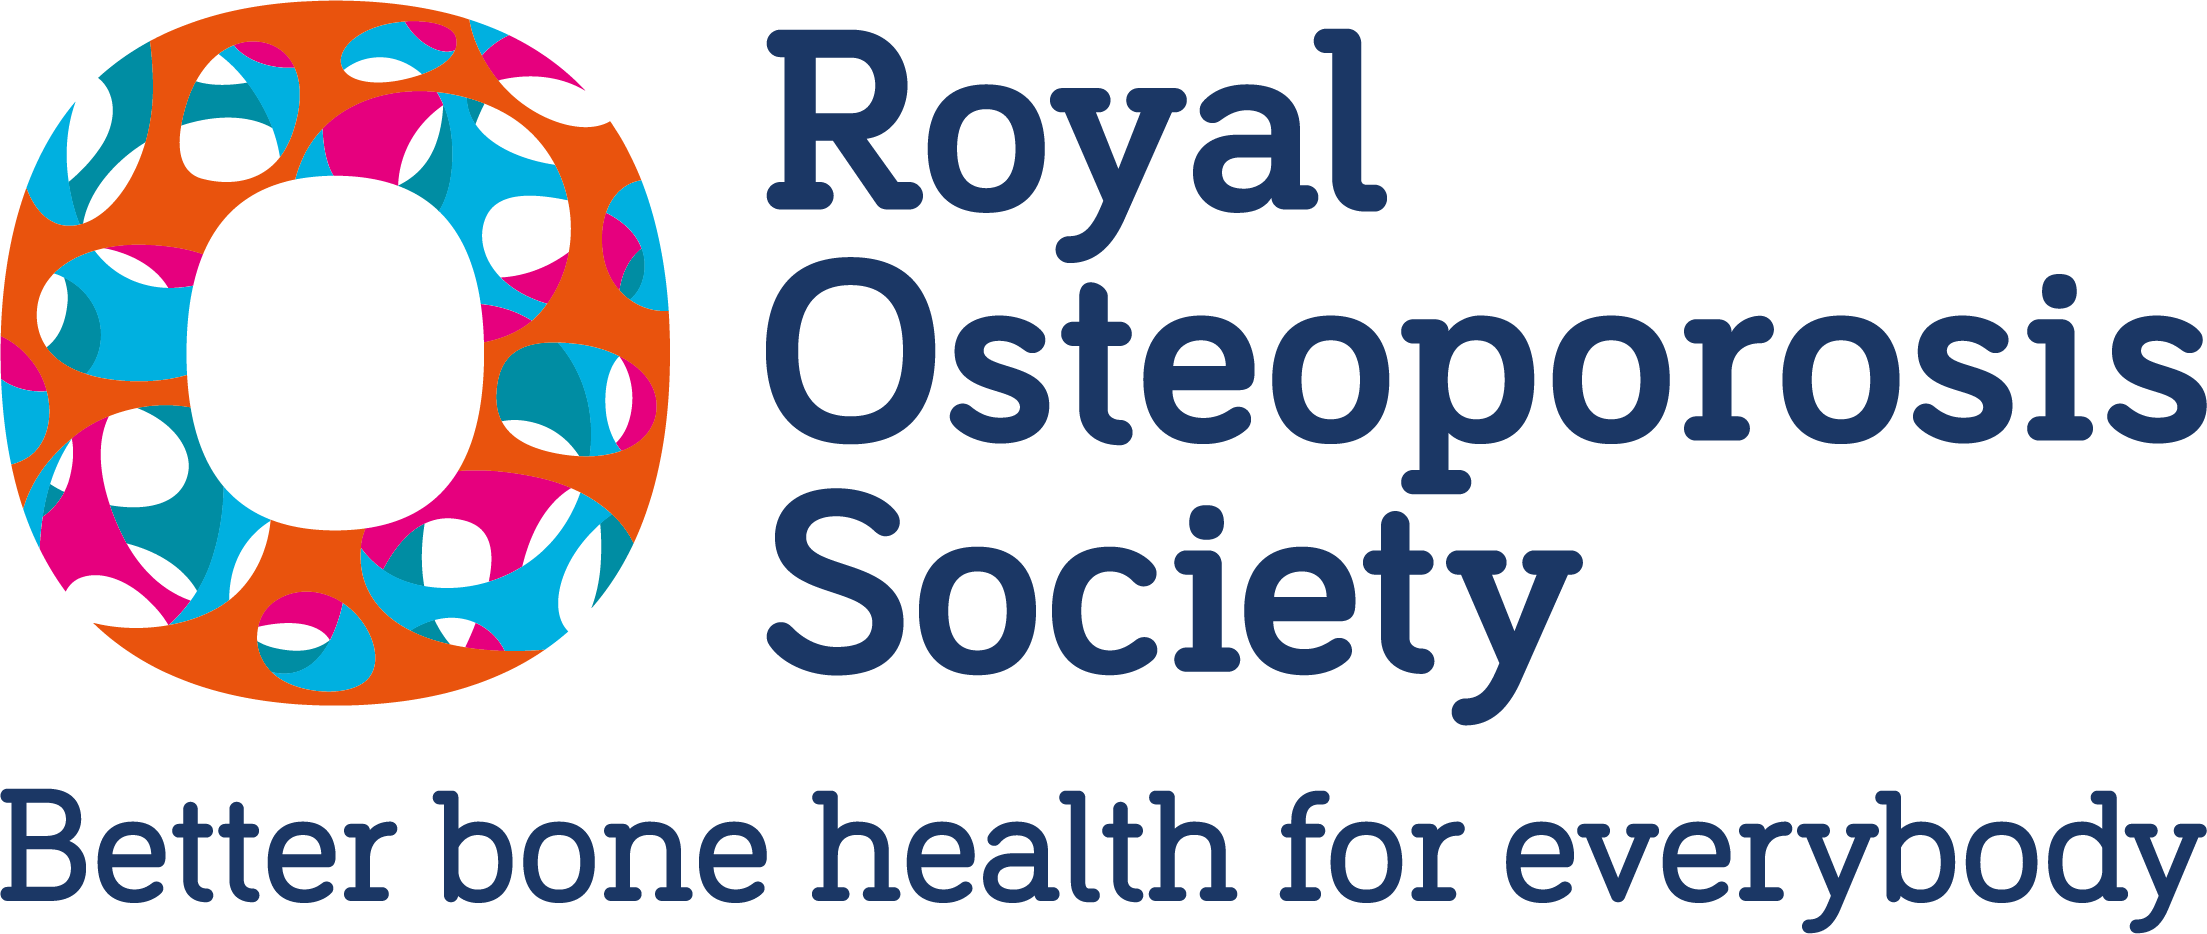 The Royal Osteoporosis Society | The Able Label